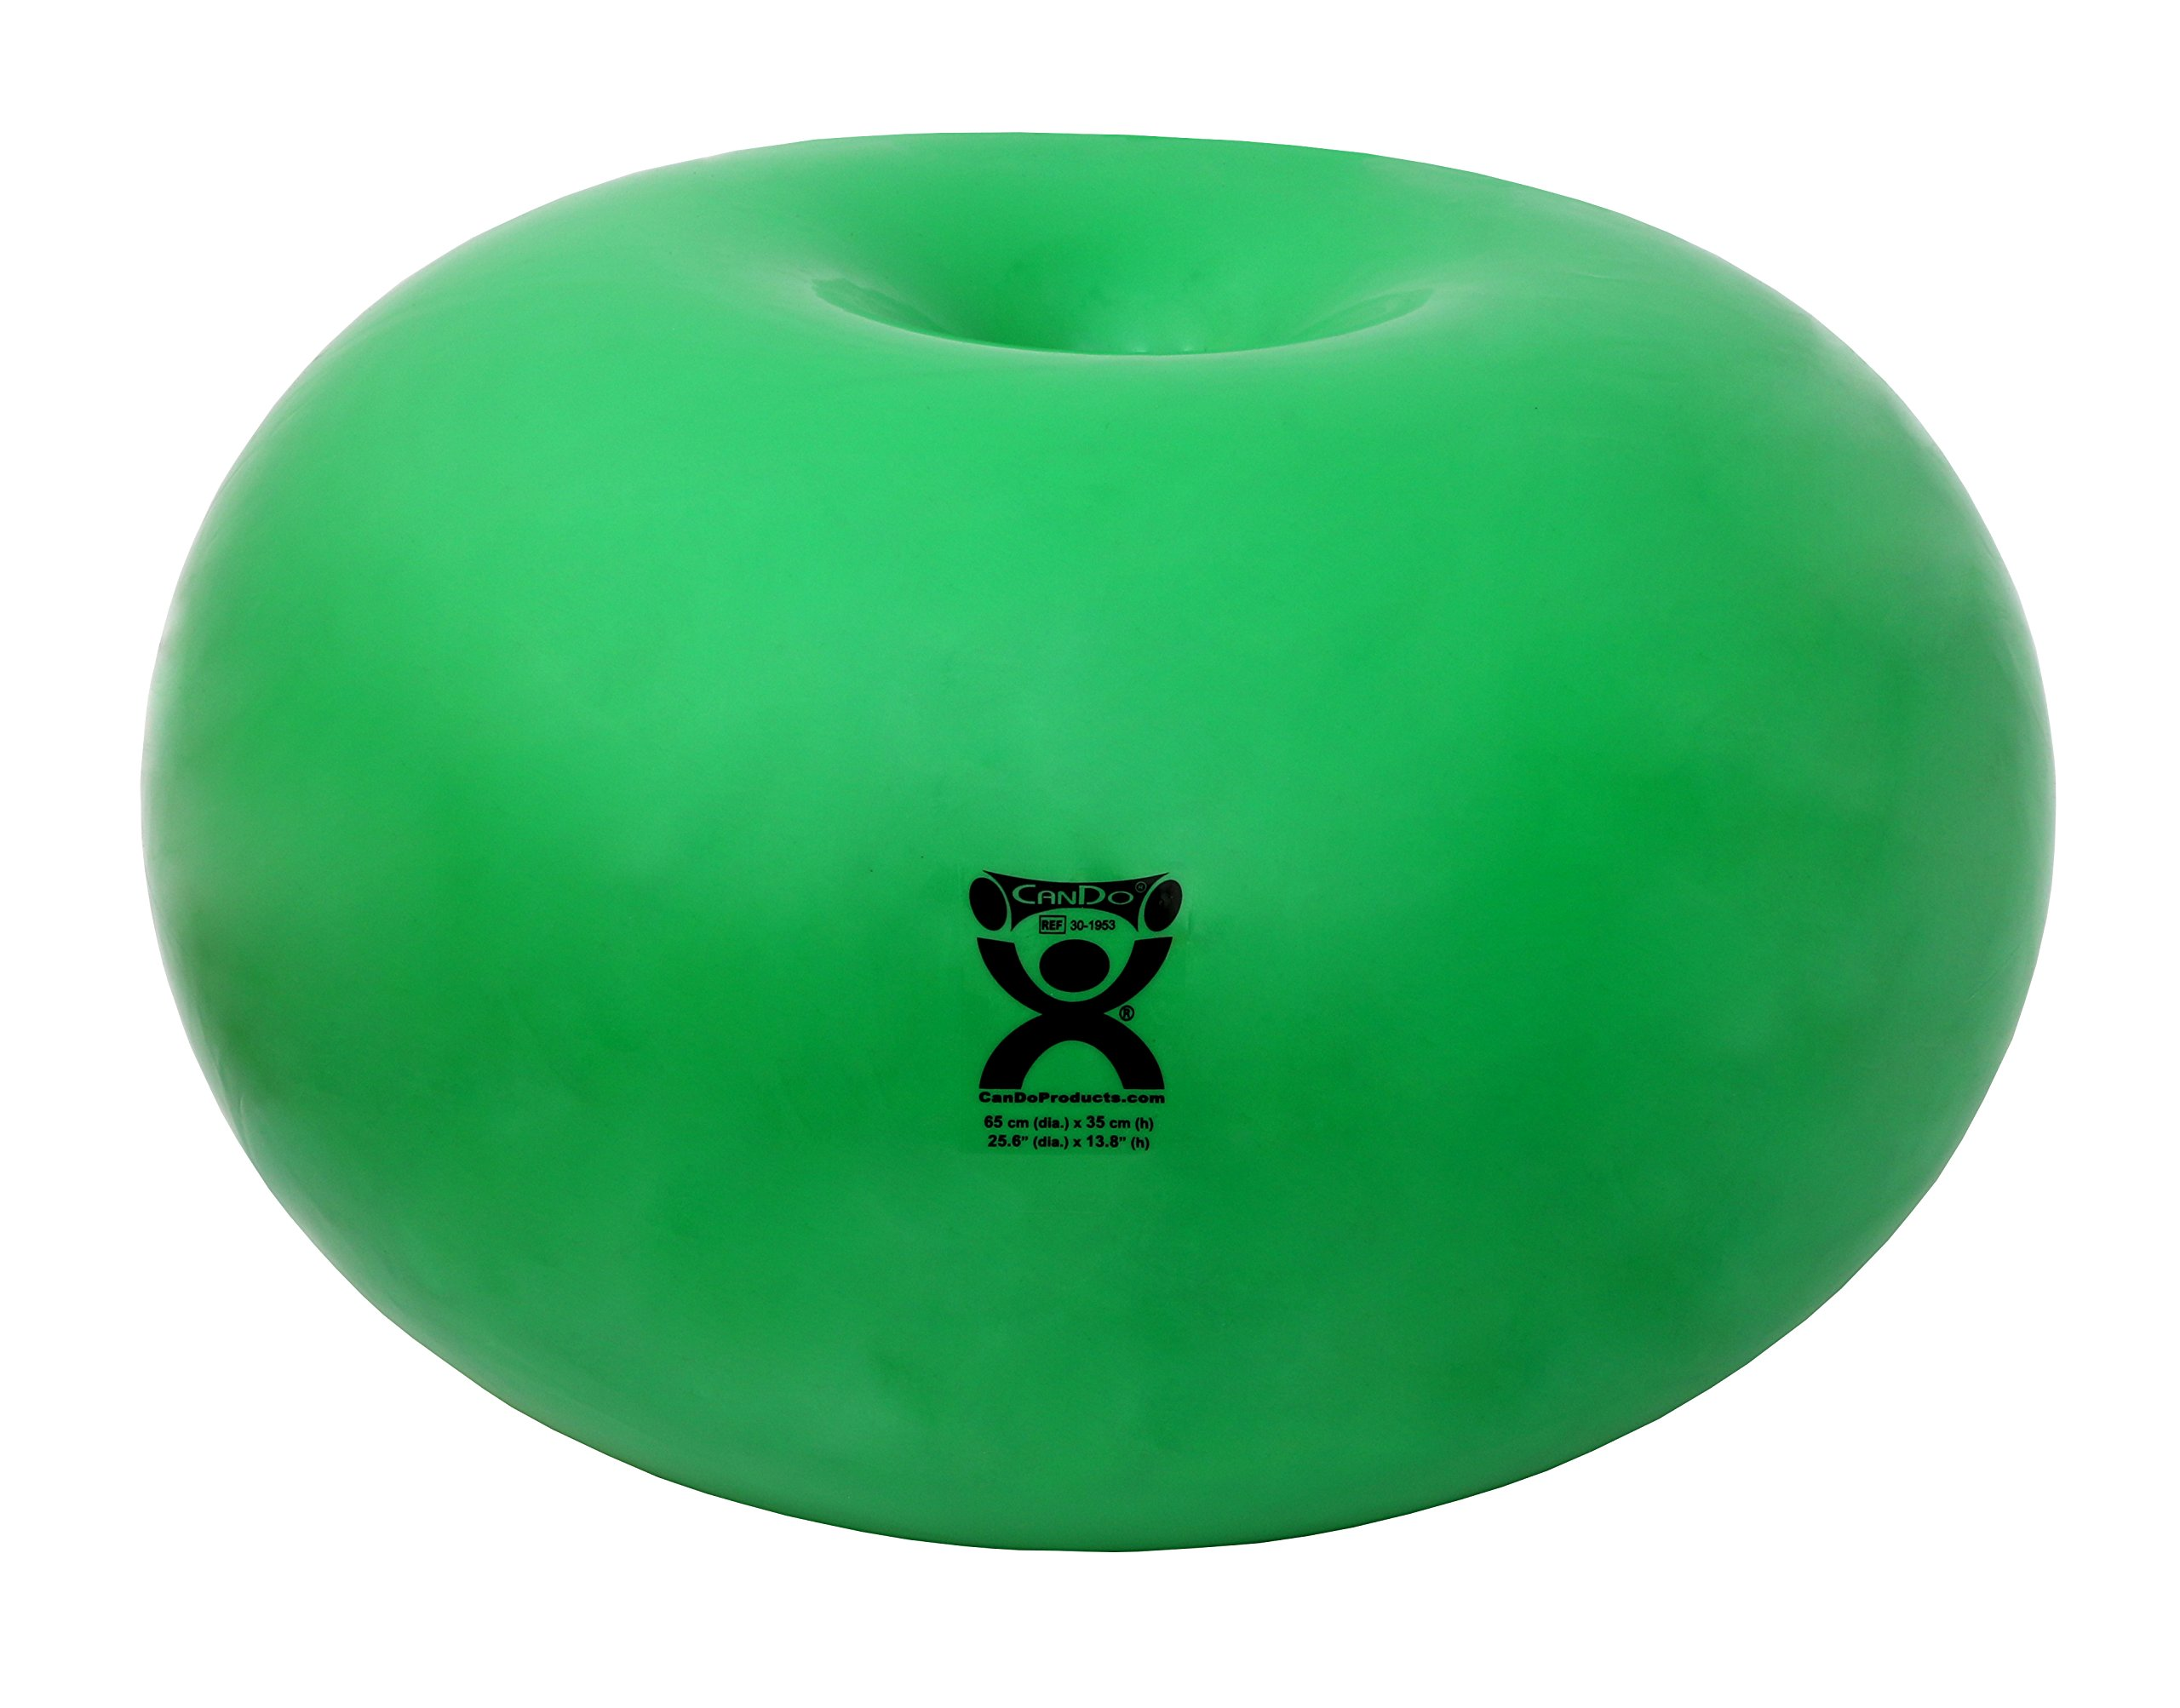 CanDo Inflatable Donut Ball, Green, 25.6''